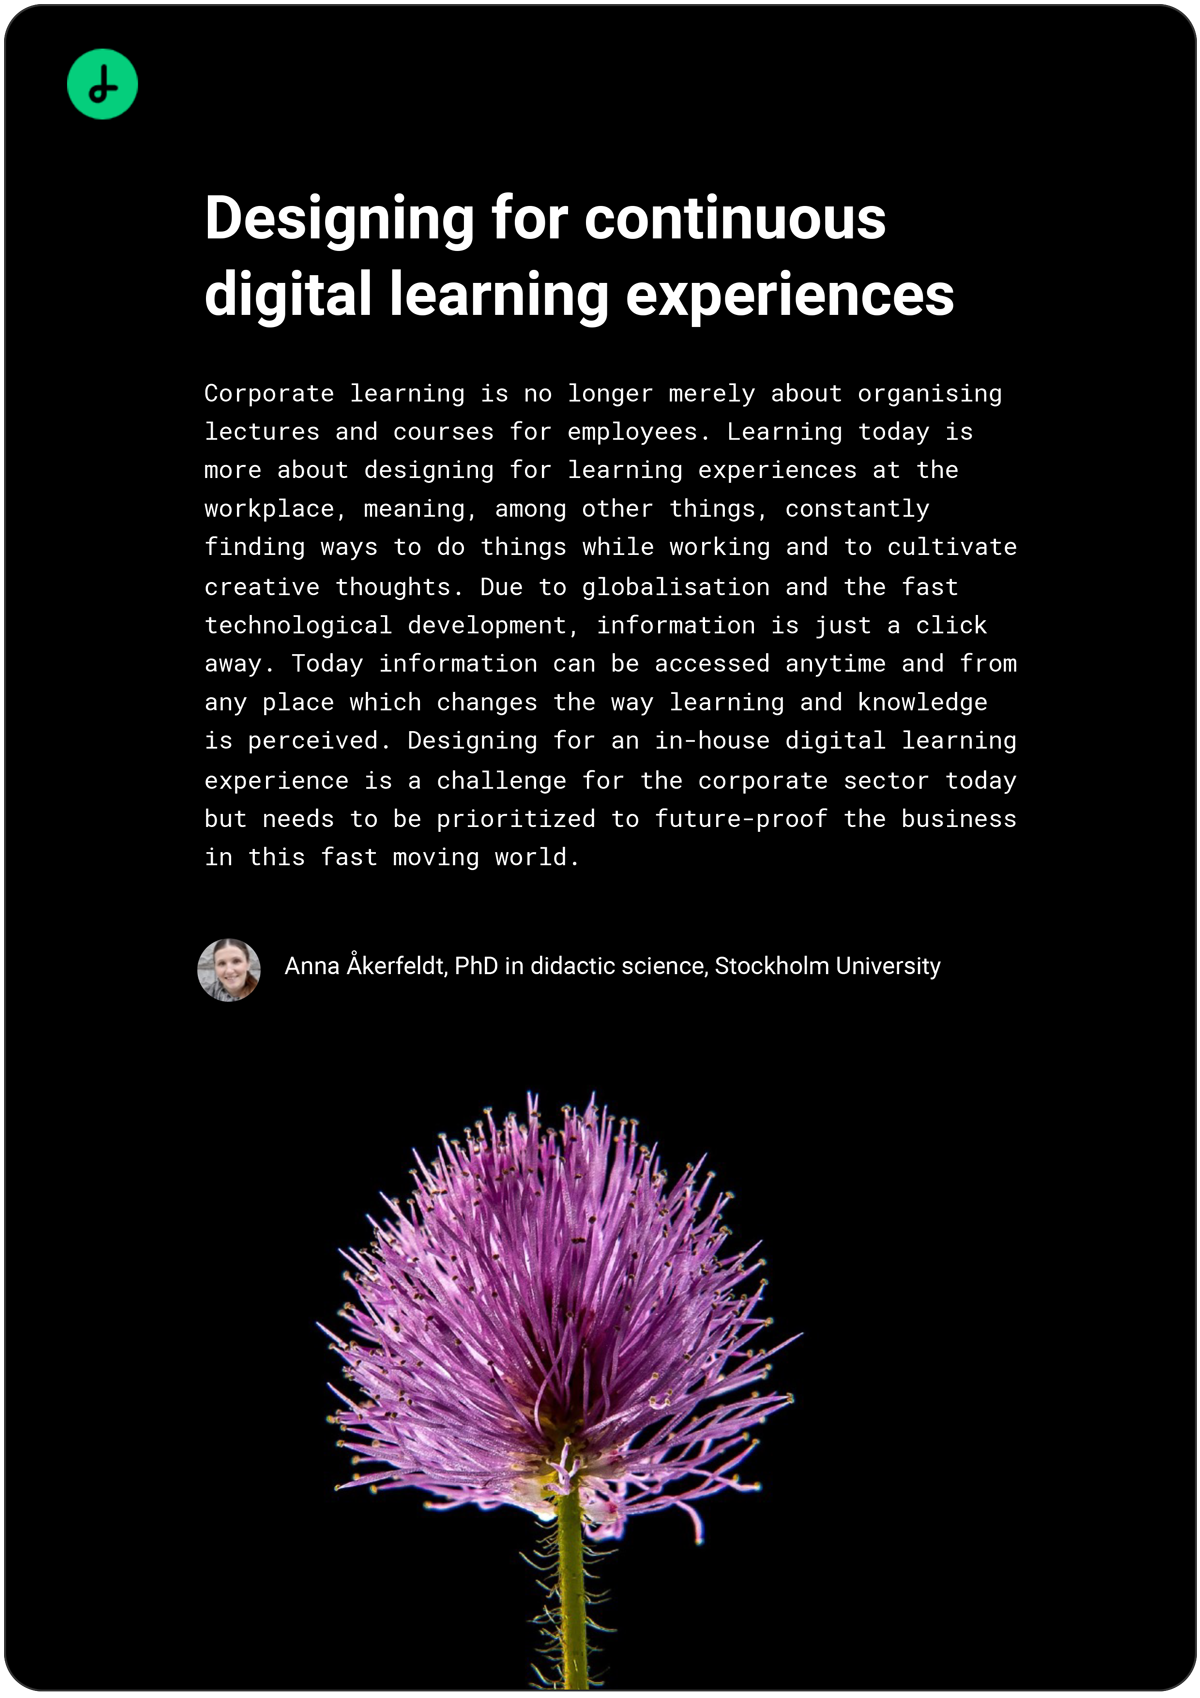 Designing for continuous digital learning experiences white paper